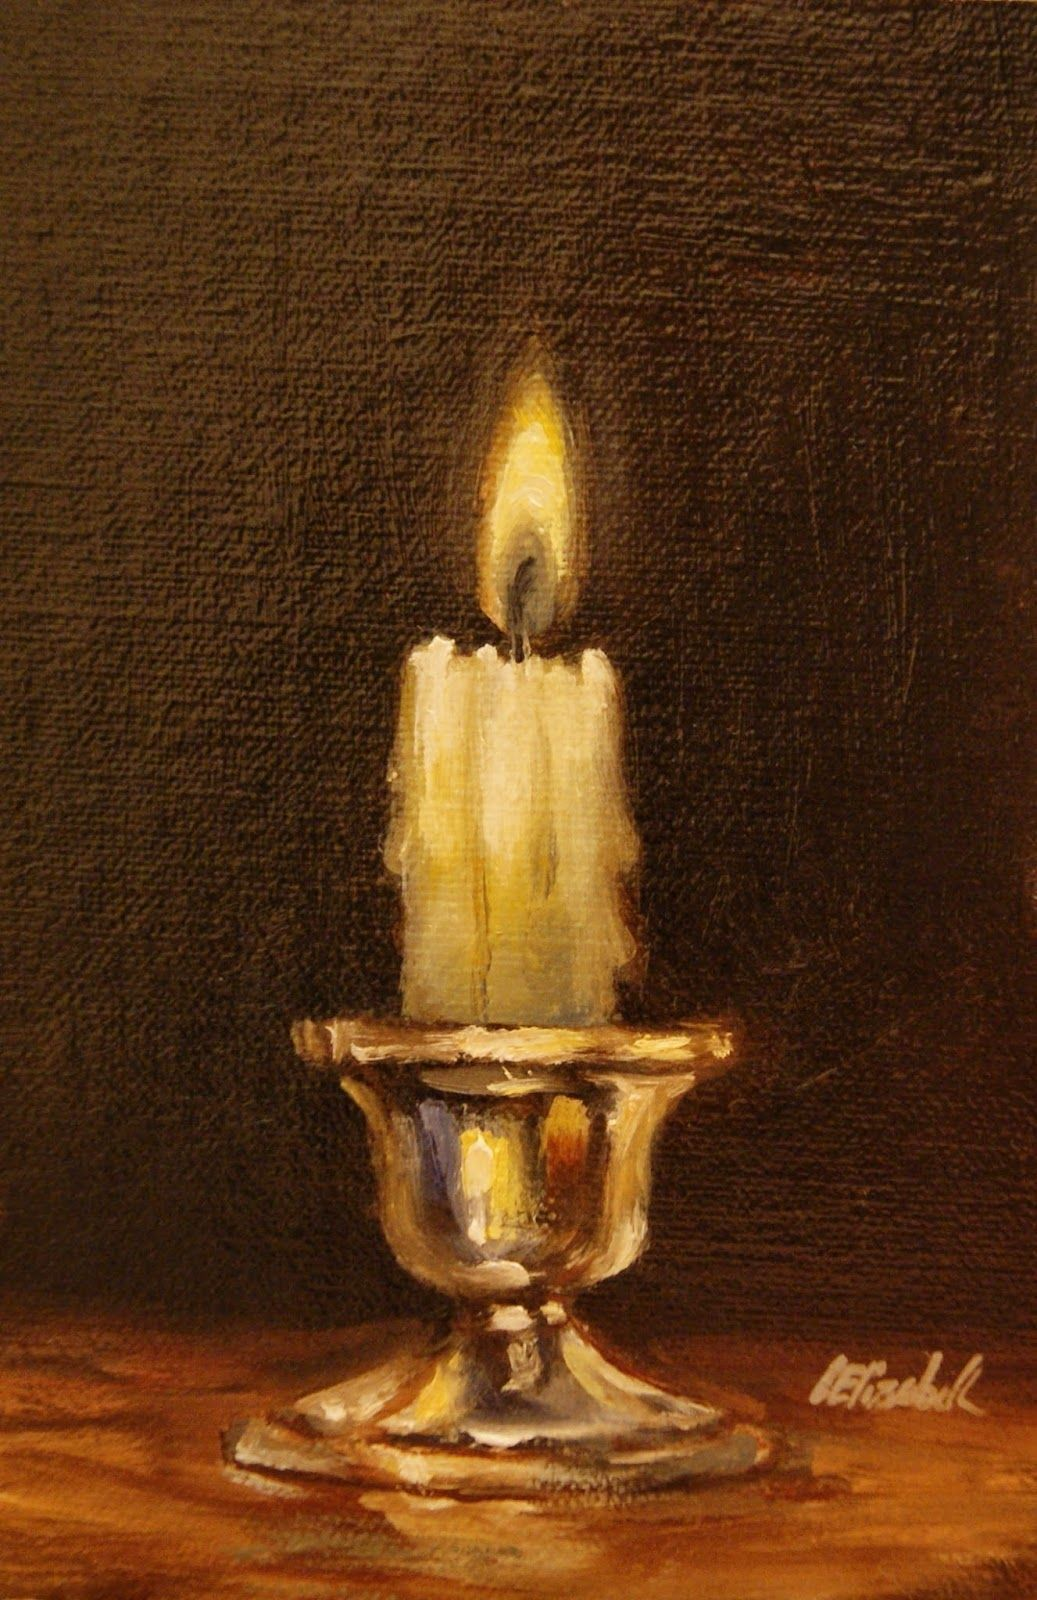 Candle On Silver Holder Oil On 4 X6 Linen Panel Still Life Oil Painting By Carolina Elizabeth Oilpaintingstilllife Oilpaintingflowers Still Life Oil Painting Oil Painting Flowers Candle Art